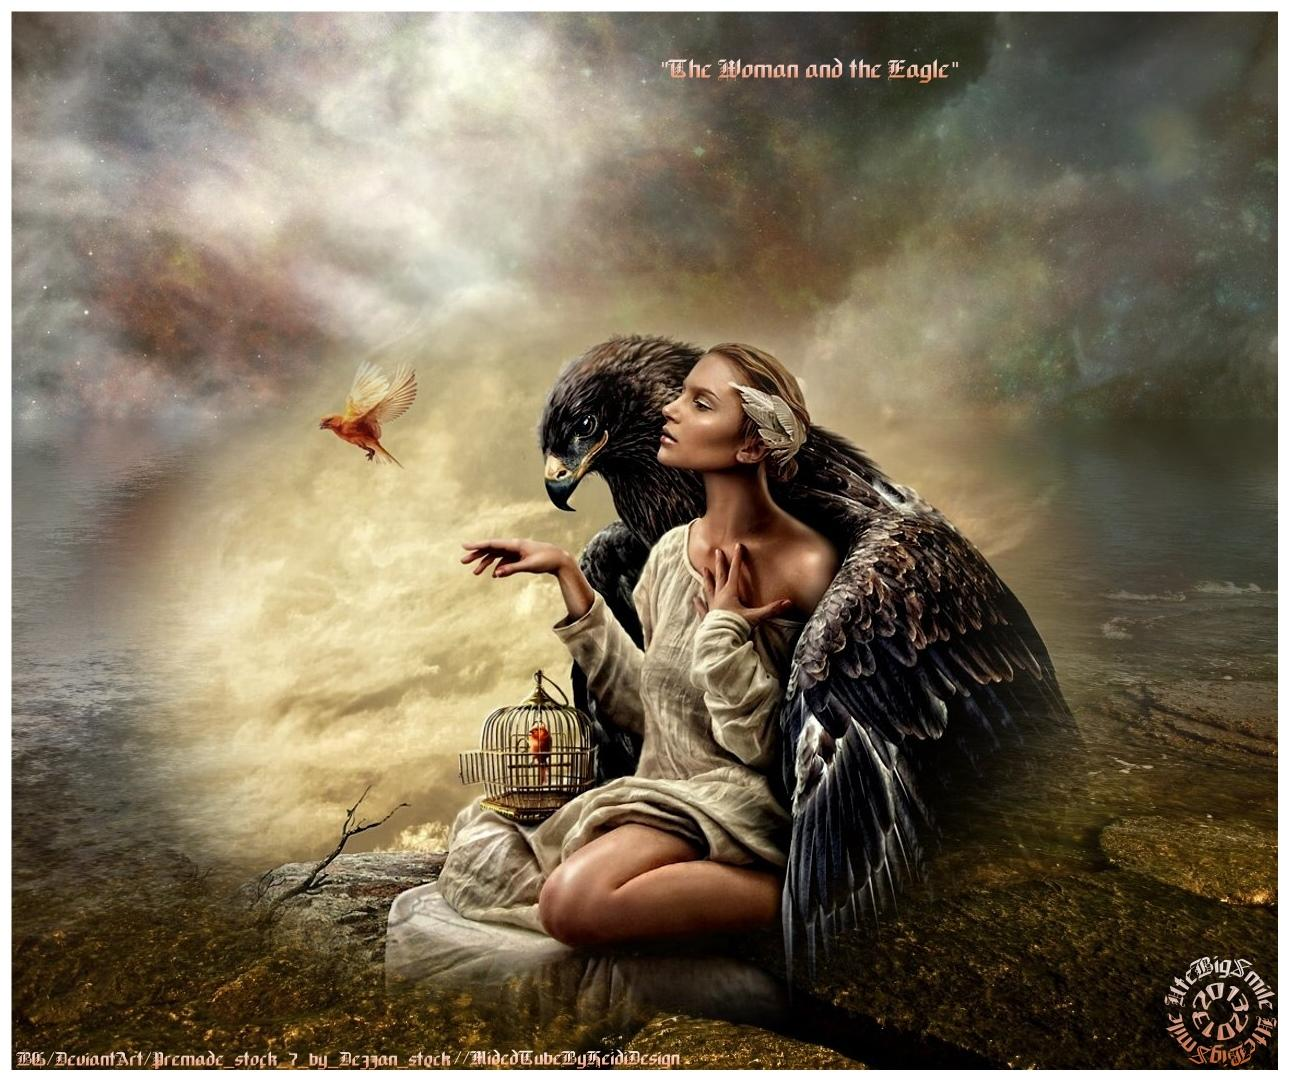 ~ The Woman and the Eagle ~